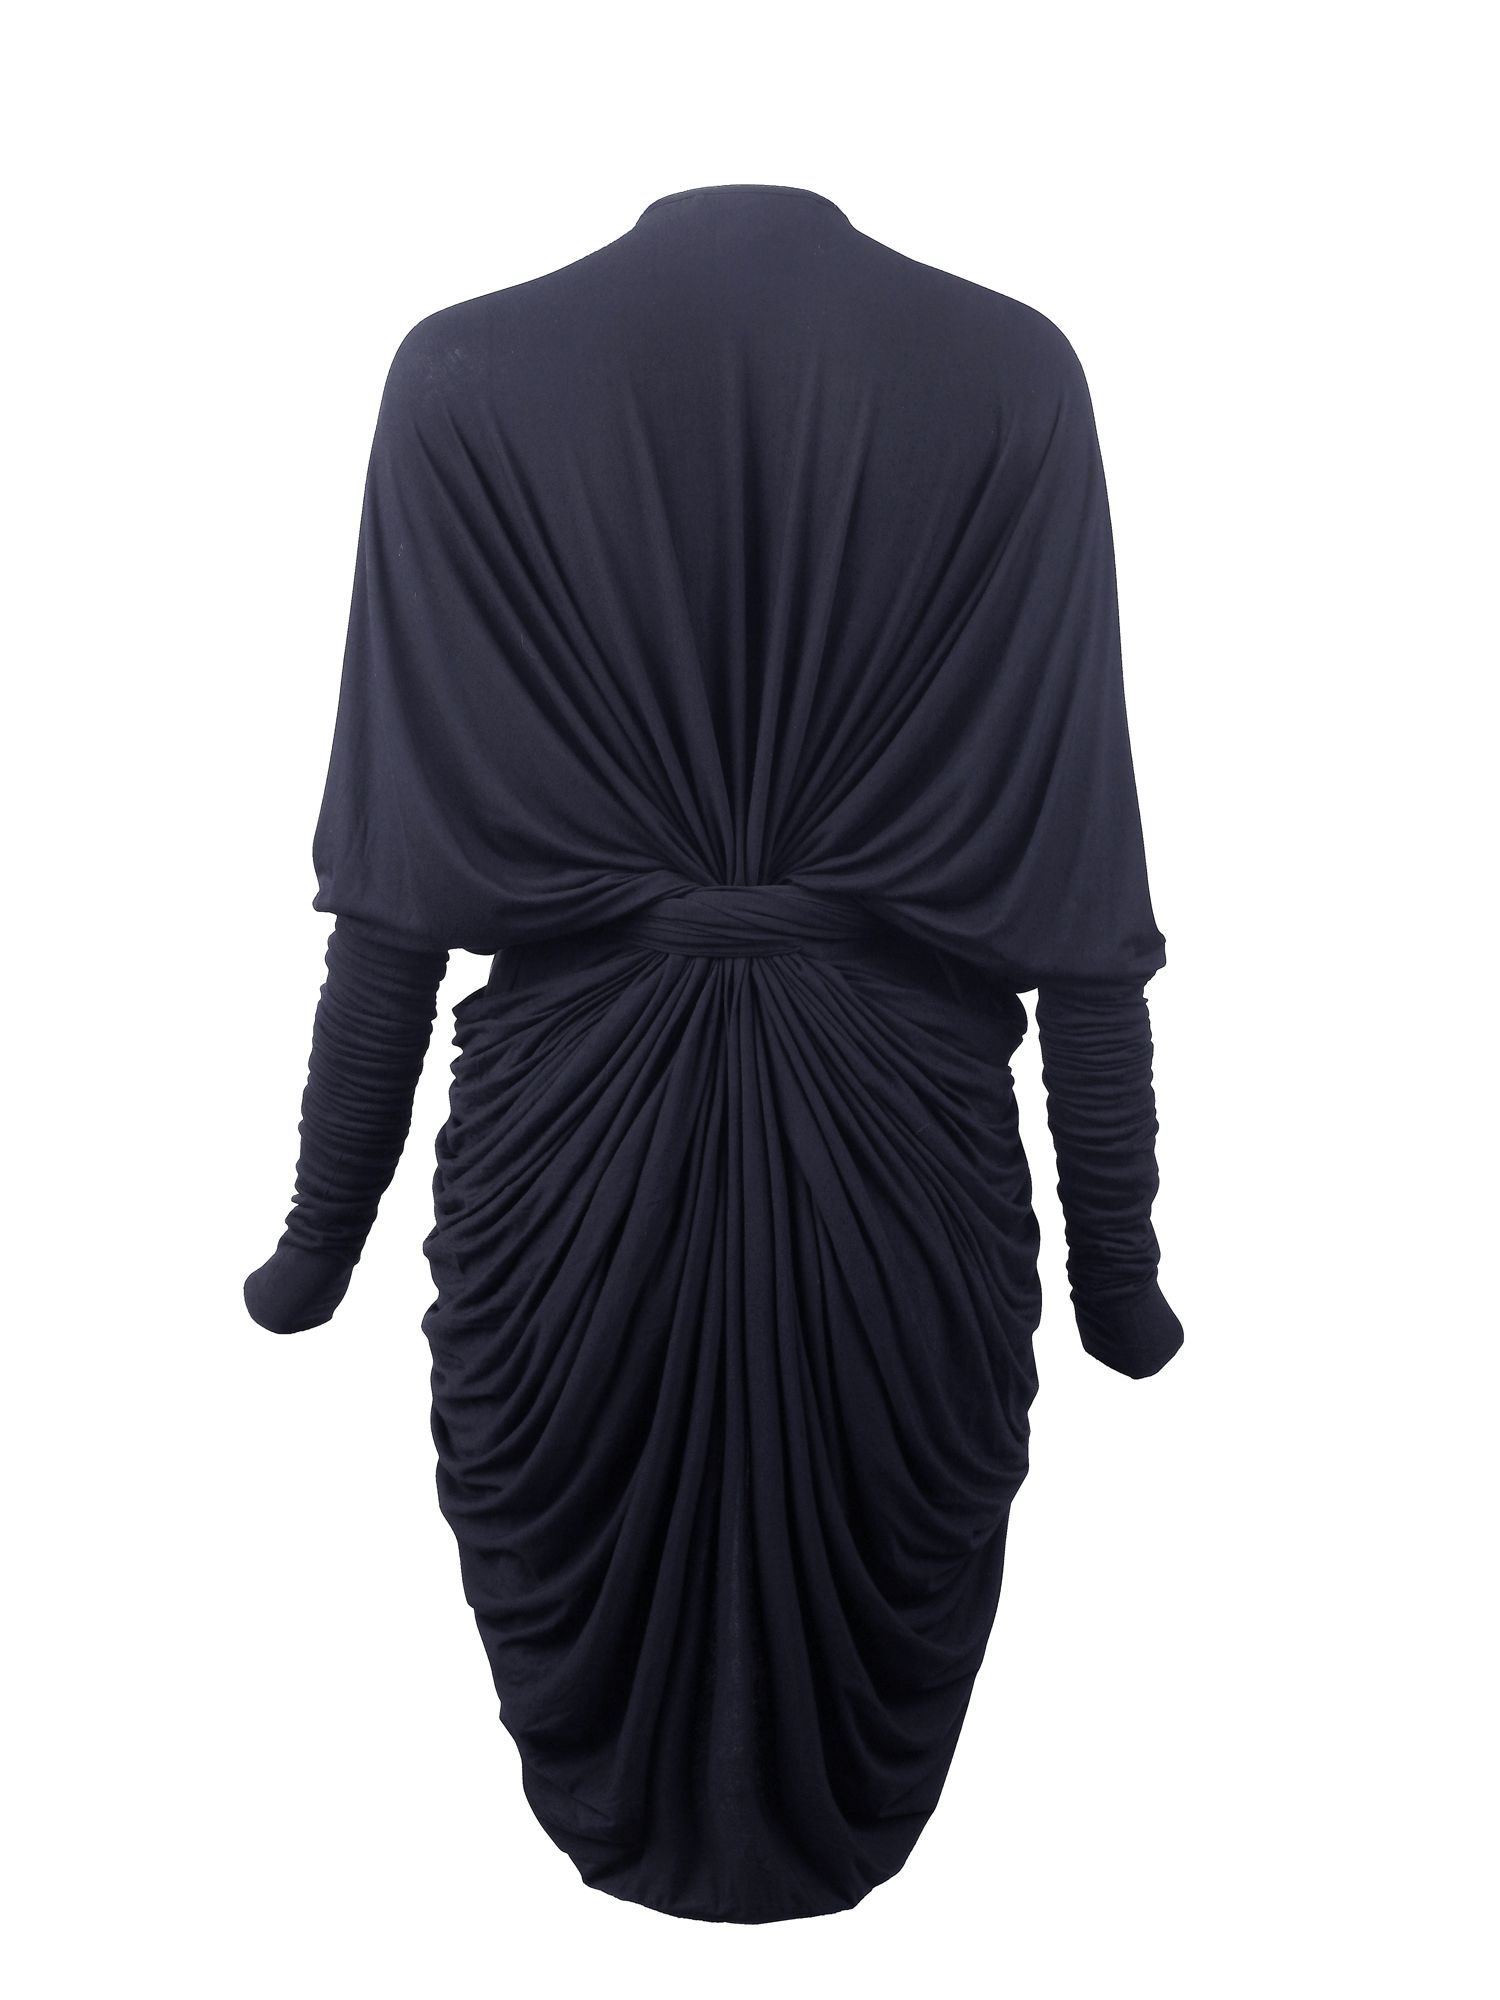 Draped wrap with long fitted sleeves